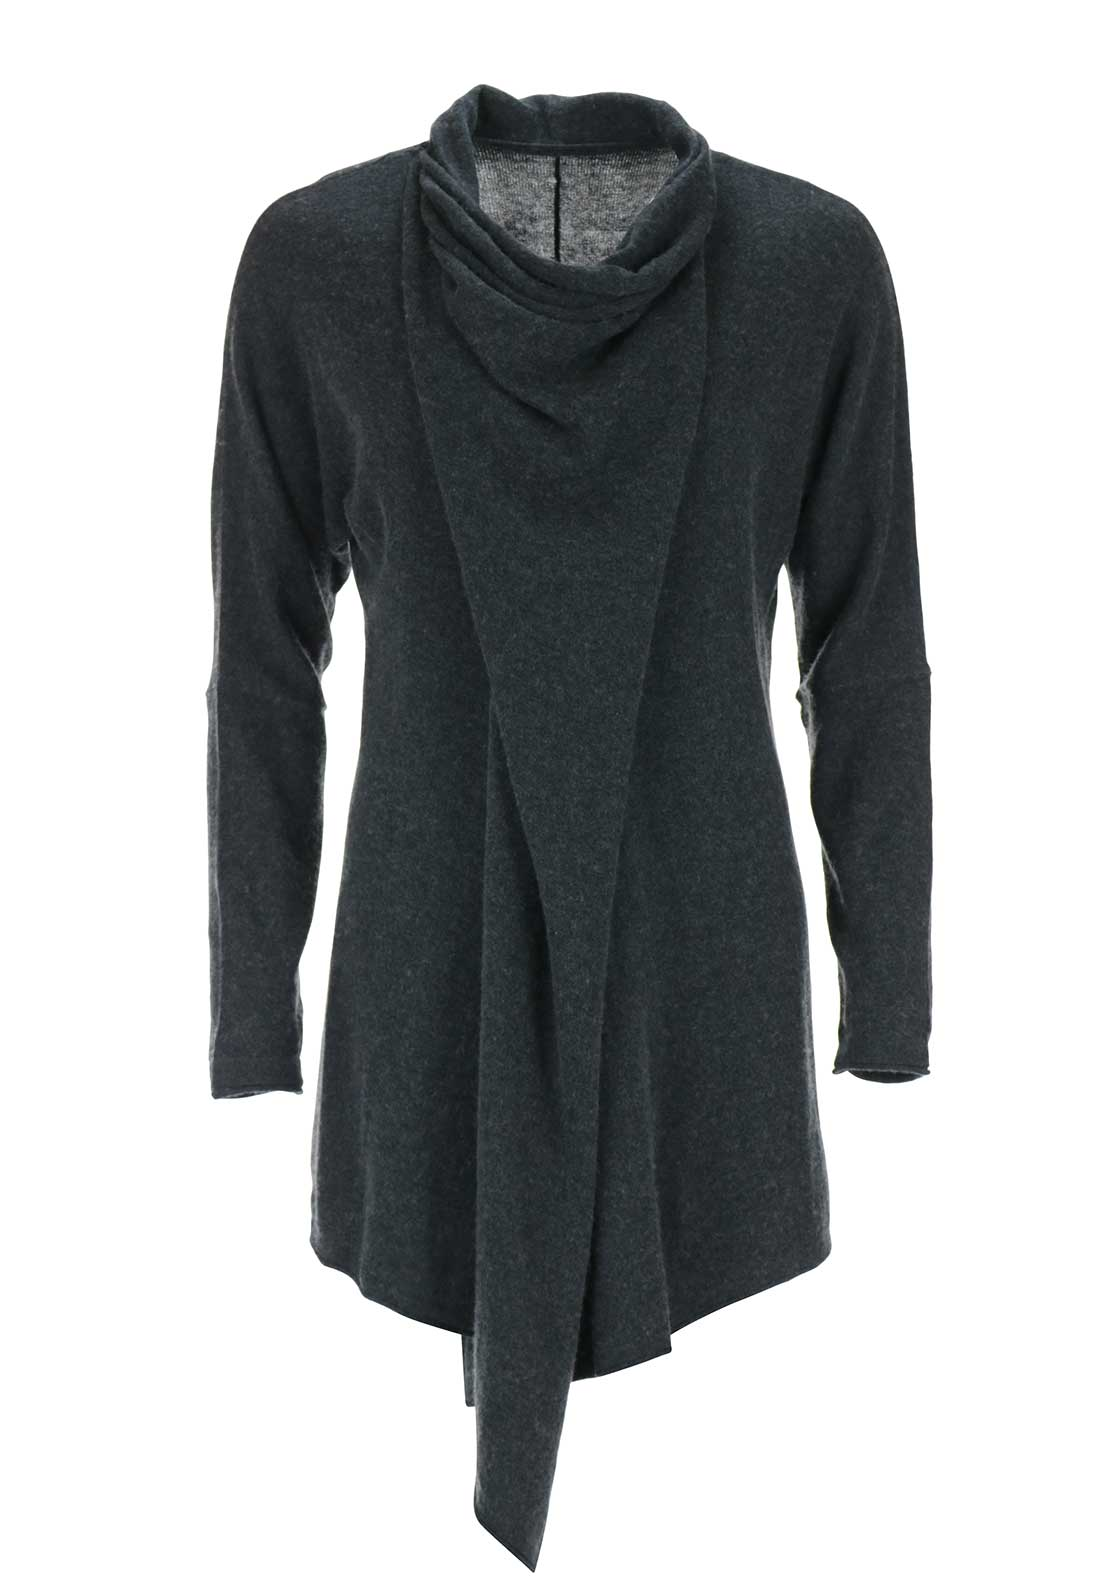 Braintree Hip Zip Multi-Way Cardigan, Dark Grey